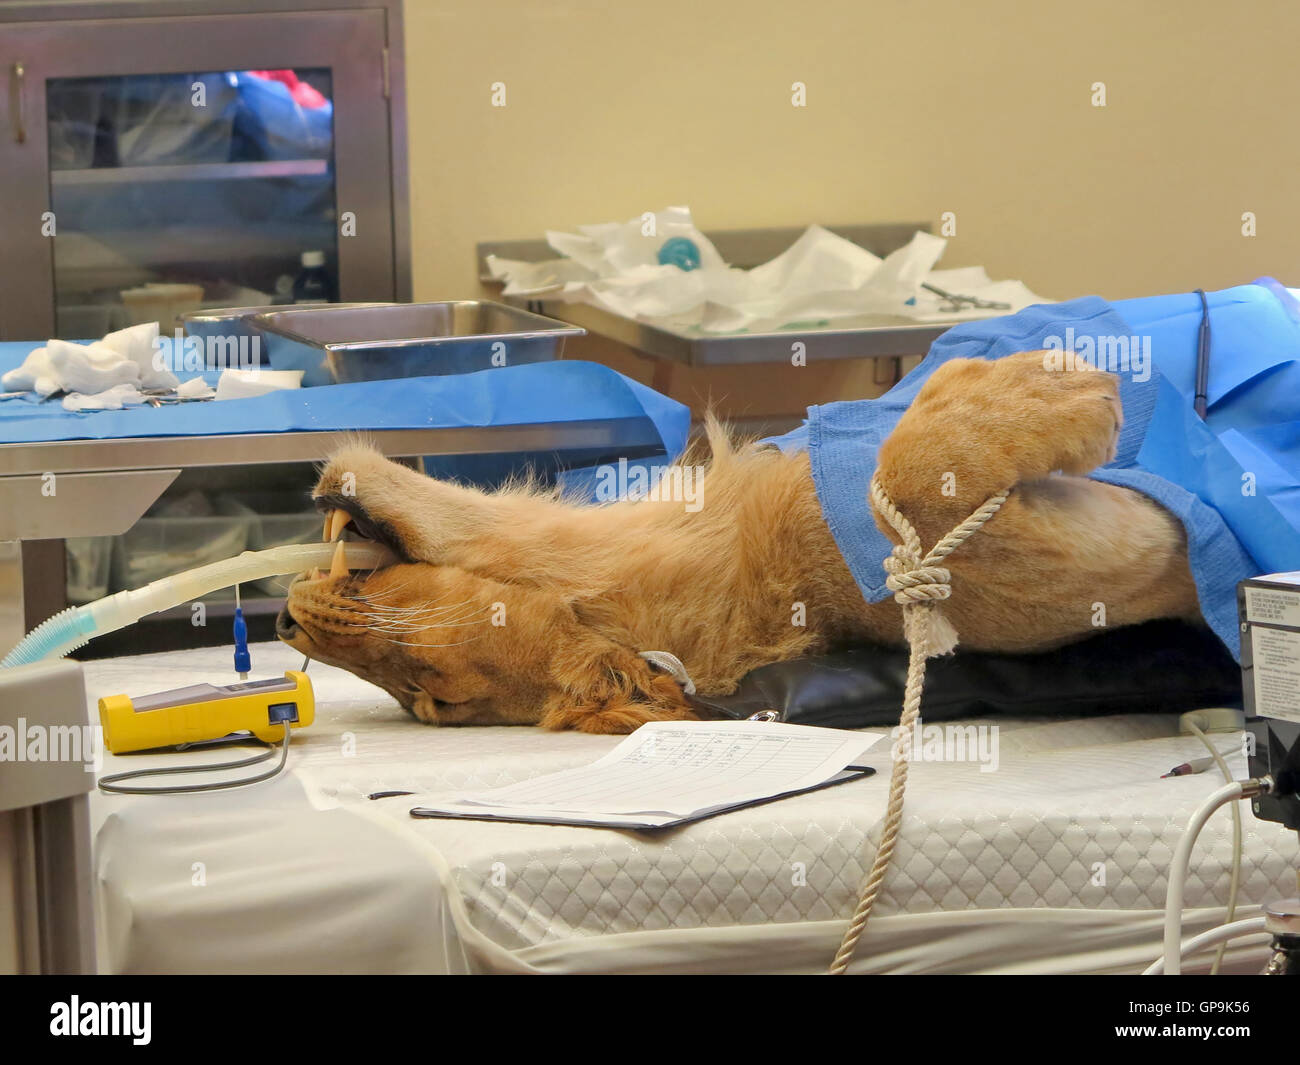 A lioness on the operating table, having surgery - Stock Image